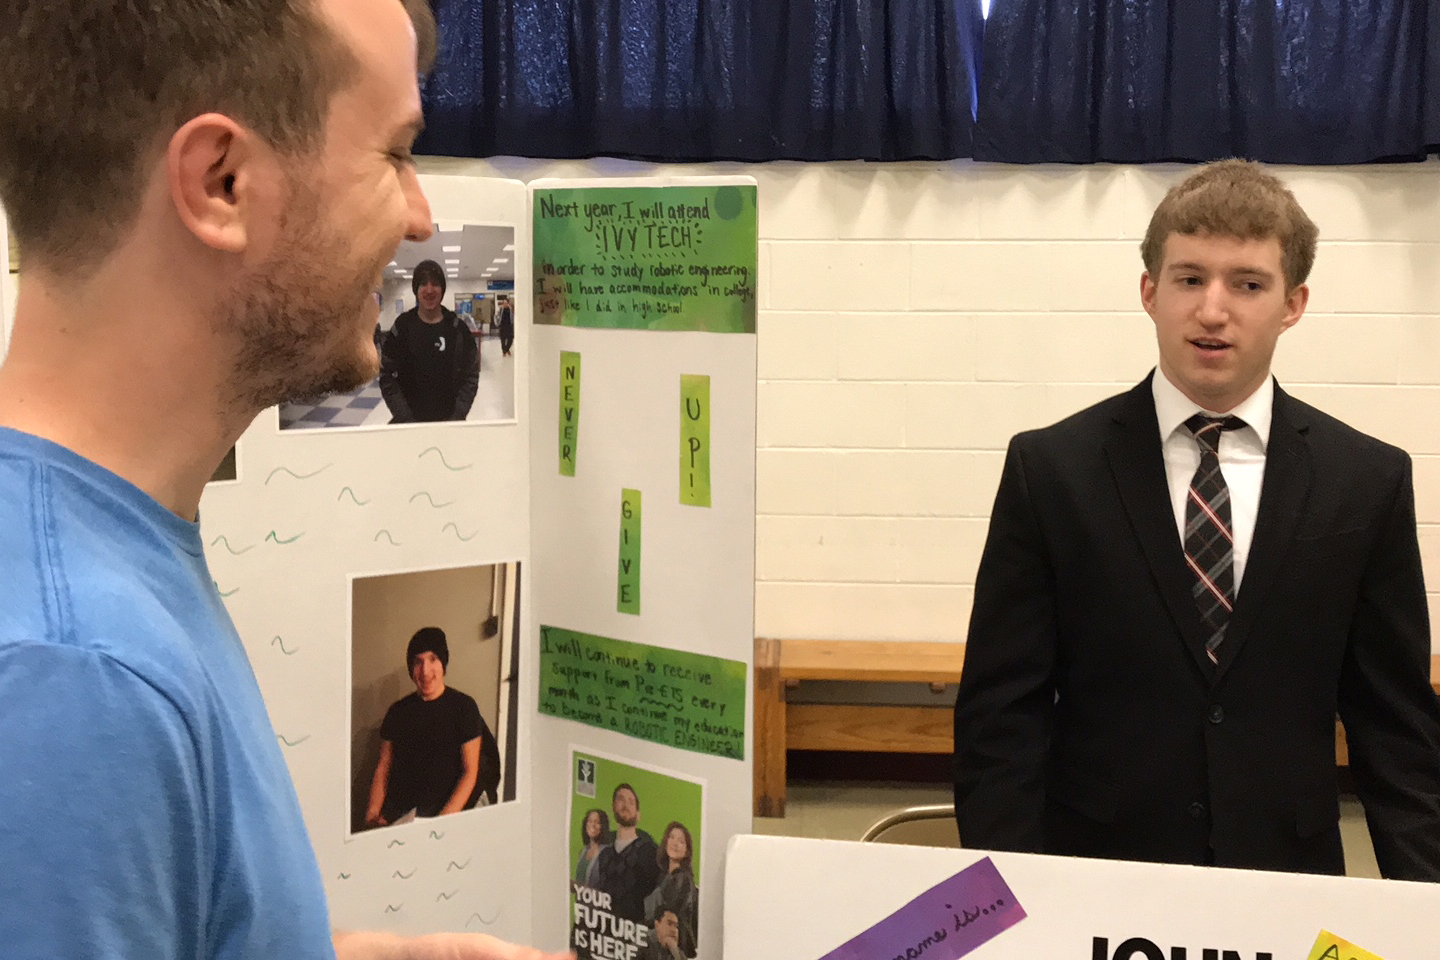 A young man in a suit behind a table talks with a smiling man in a blue shirt about his experience with the Pre-Employment Transition Services program.